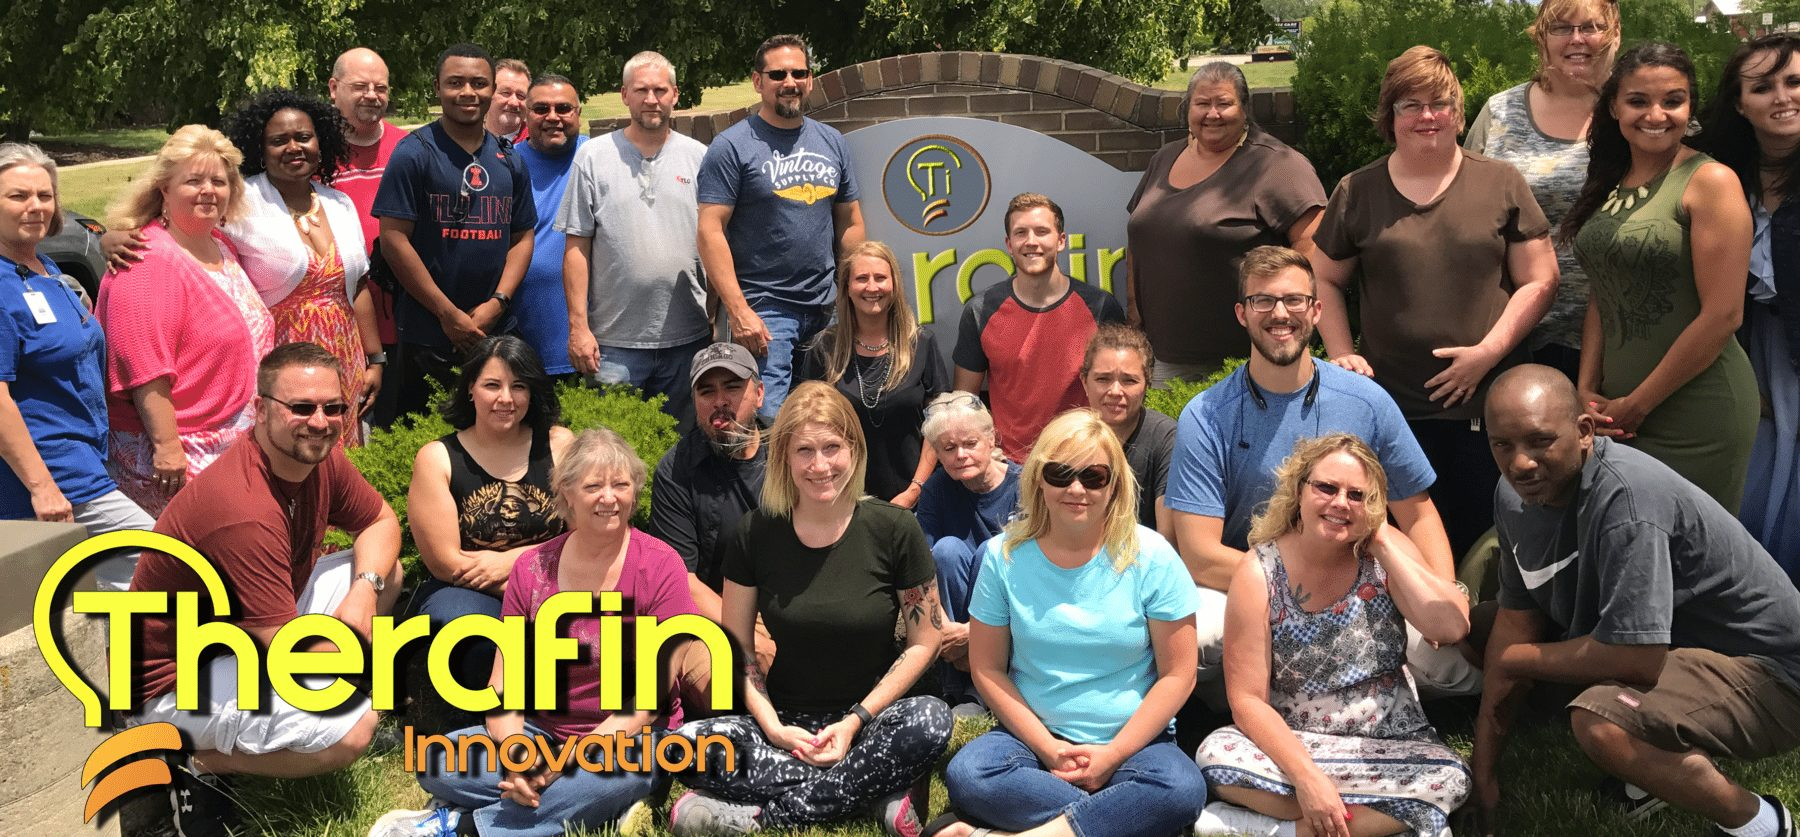 Therafin Innovation Team